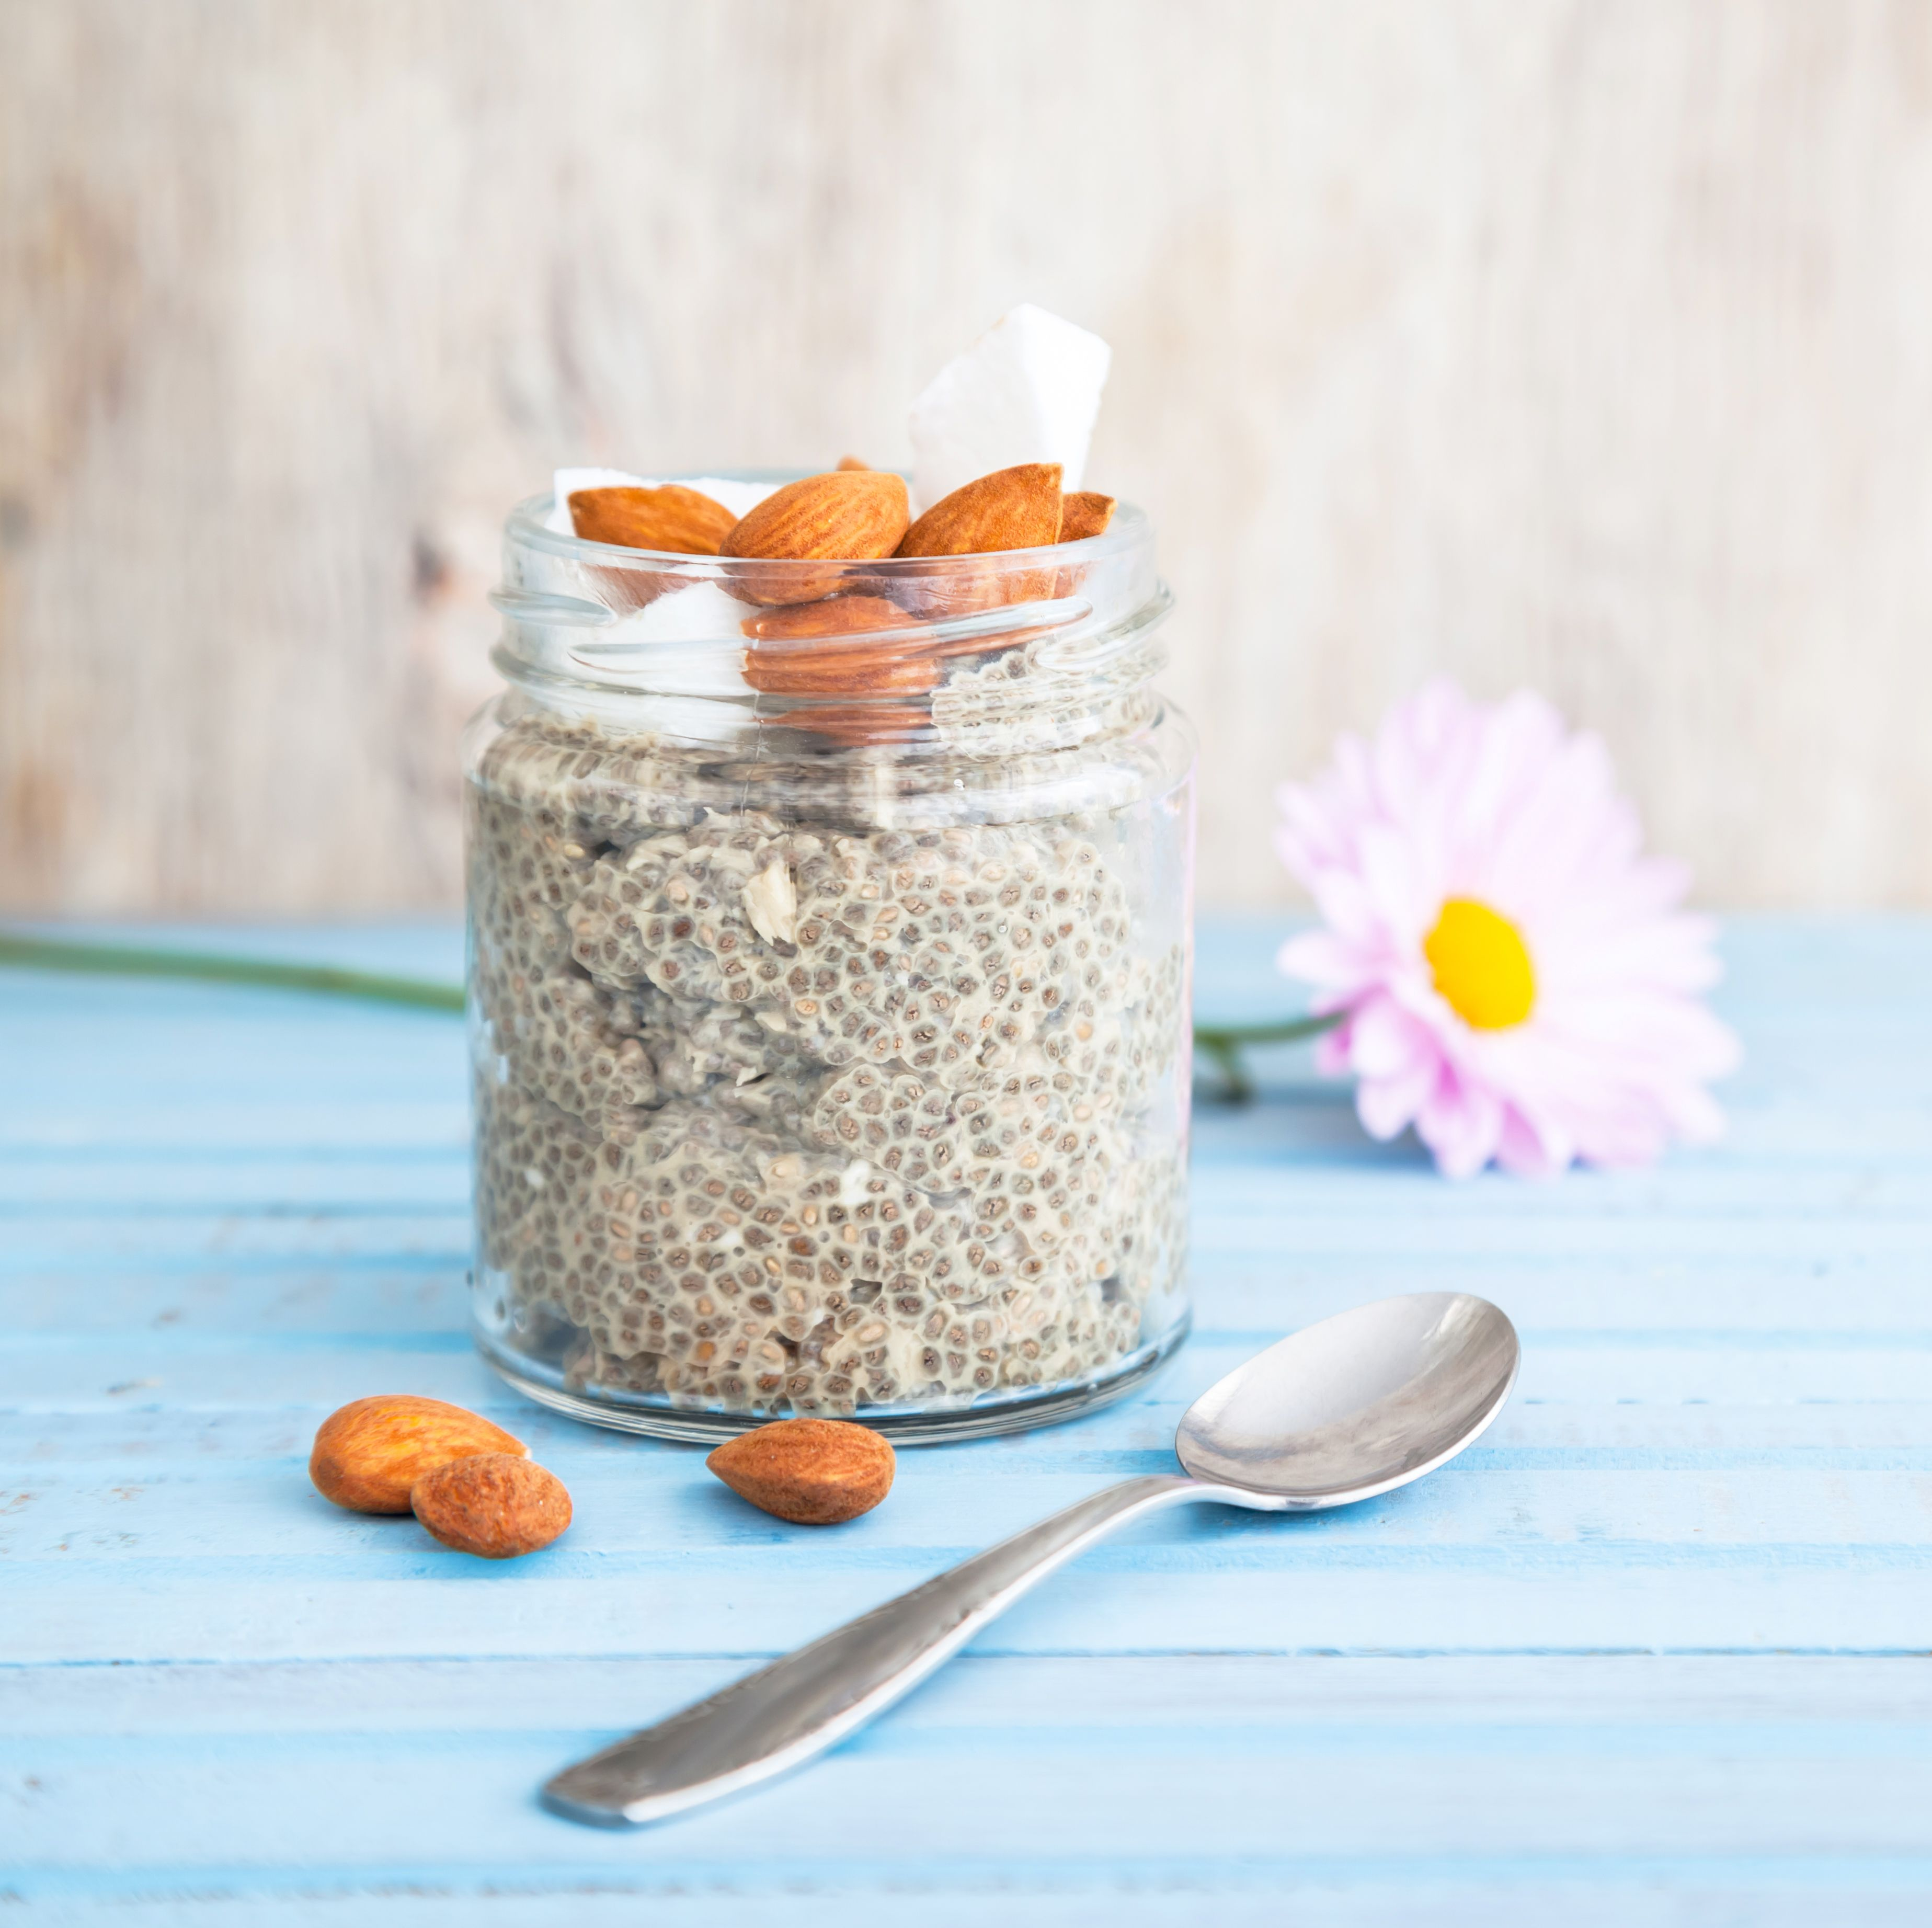 Chia pudding with almonds and coconut